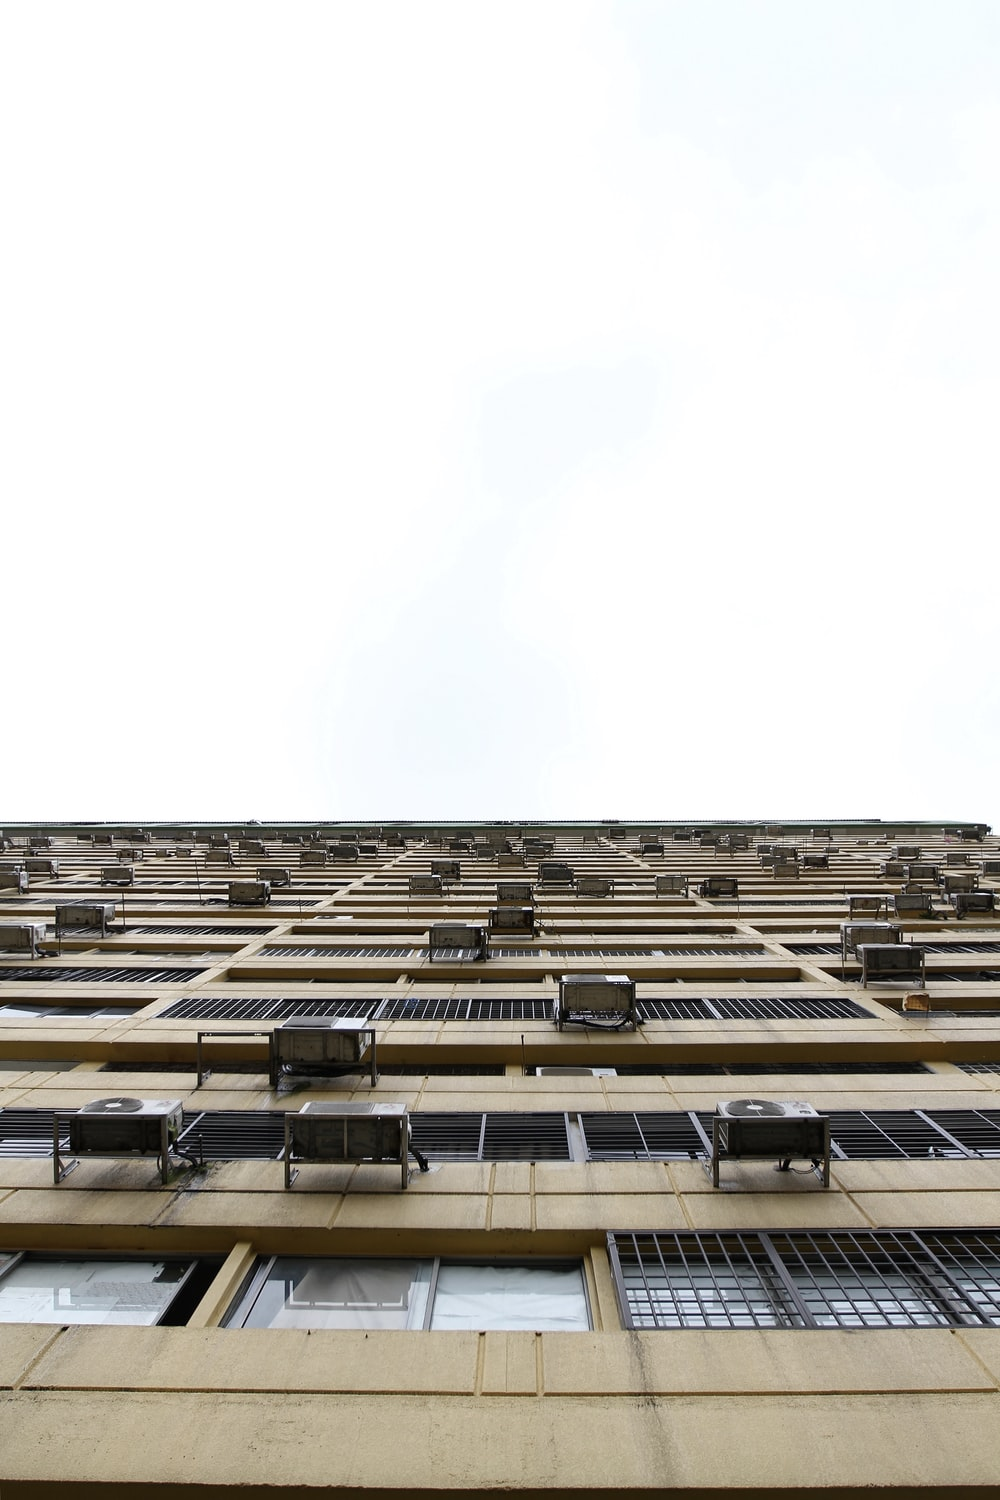 beige building in worm's eye view photography